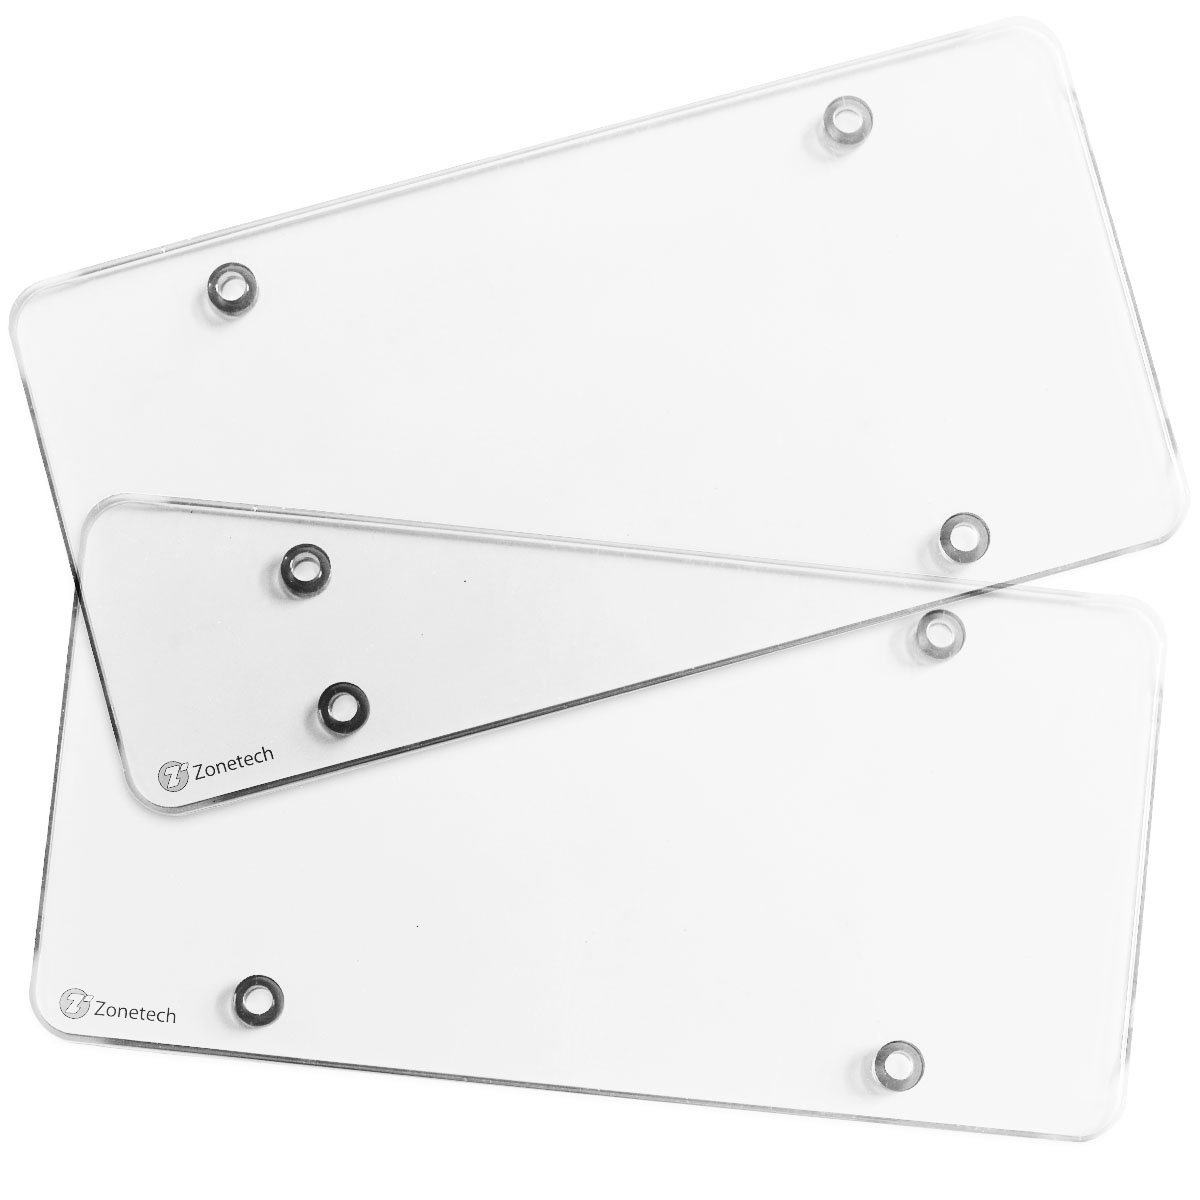 Zone Tech Clear License Plate Cover Frame Shields 2-Pack Novelty//License Plate Clear Flat Shields Comfort Wheels GA0069